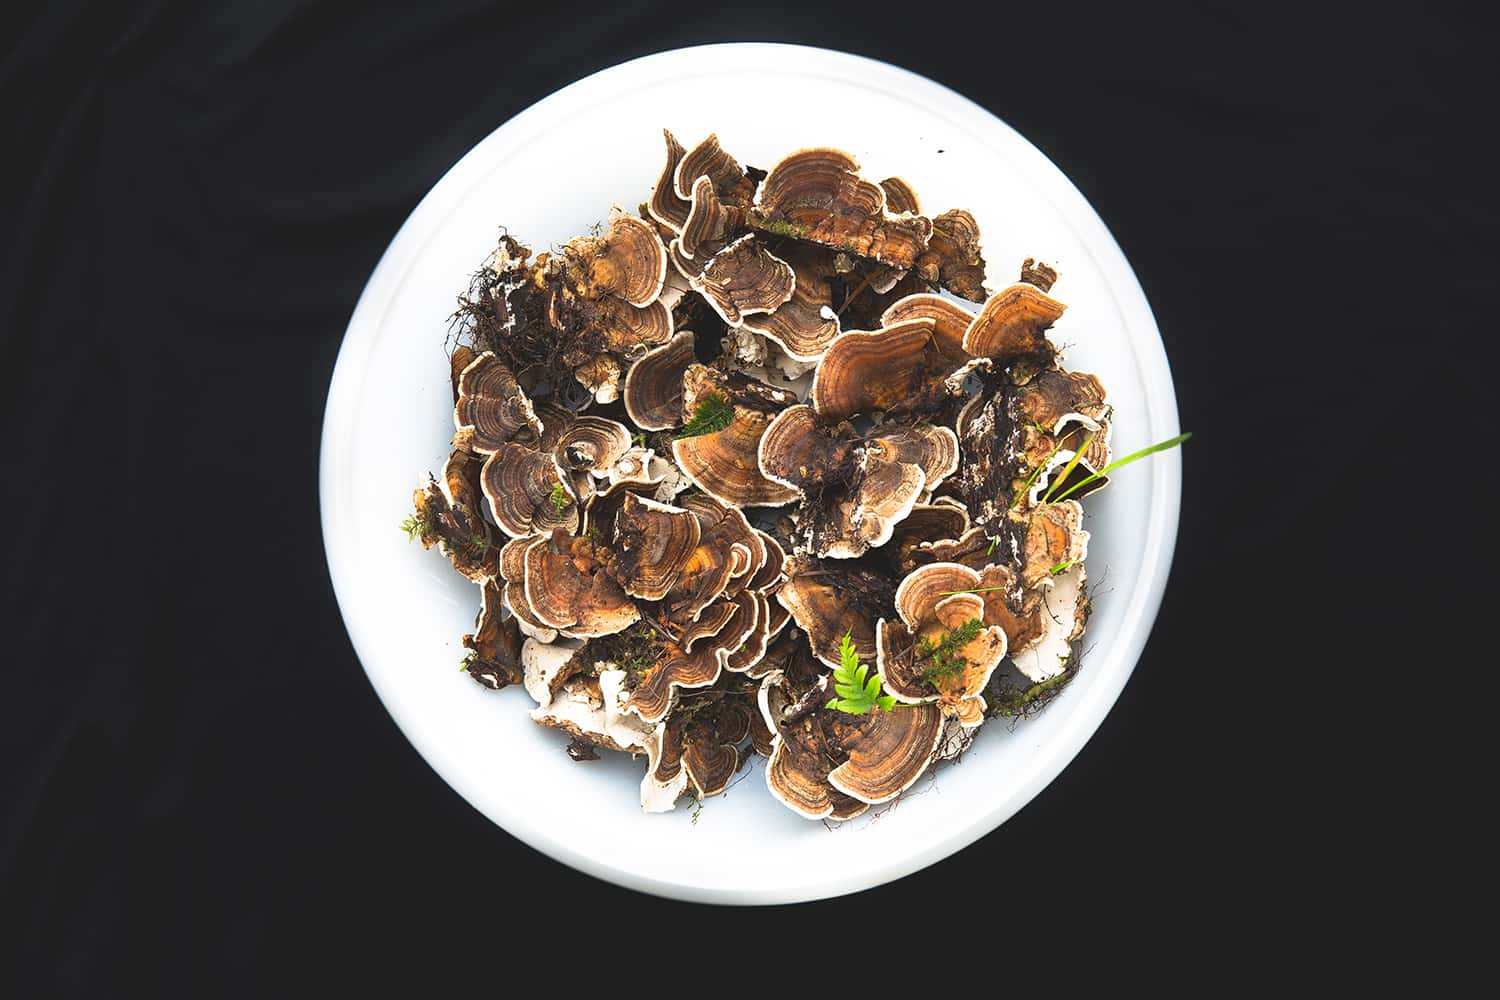 Harvested mushrooms collected by Portland Florist from nearby Portland Oregon forest